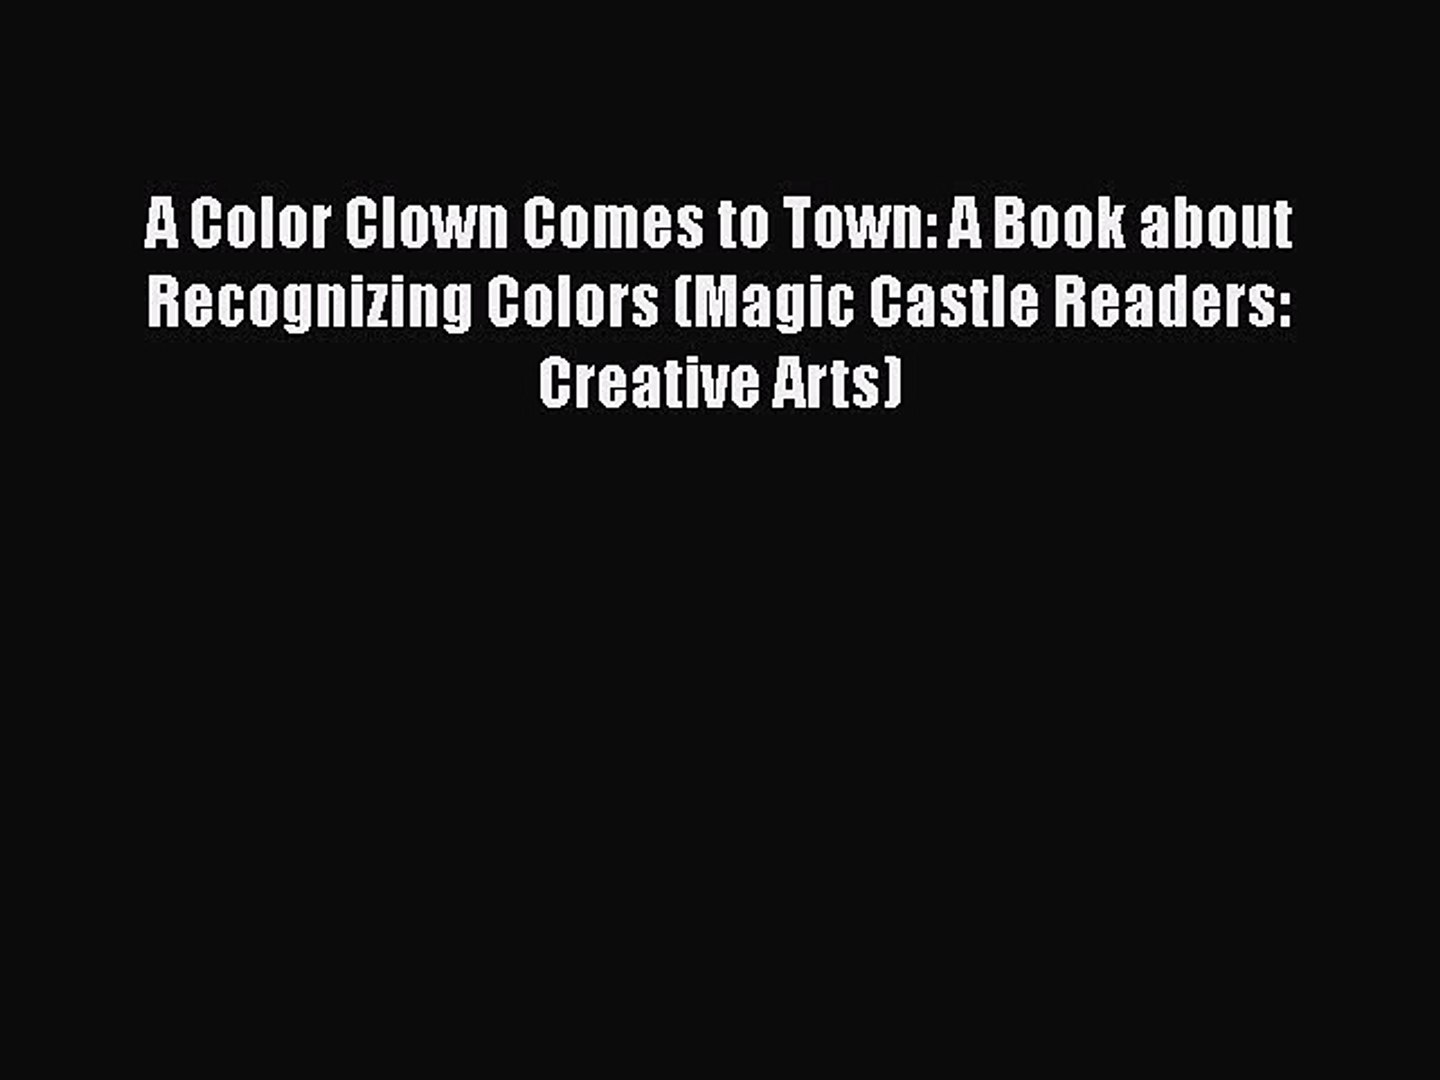 [PDF] A Color Clown Comes to Town: A Book about Recognizing Colors (Magic Castle Readers: Creative